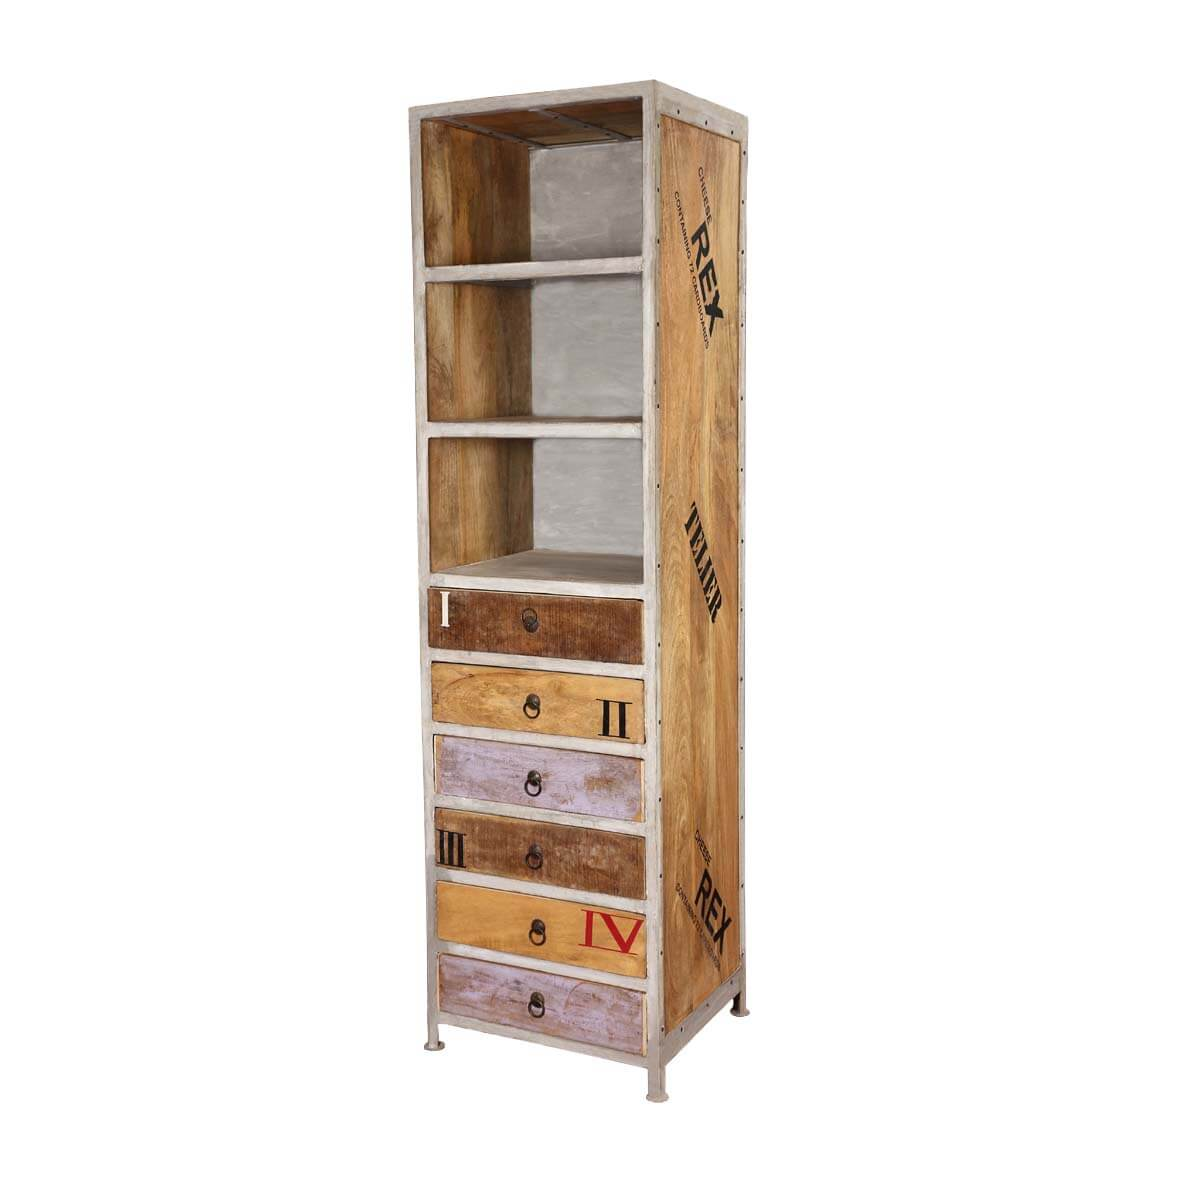 Ripon 3 Open Shelf Rustic Industrial Tall Narrow Bookcase With Drawers